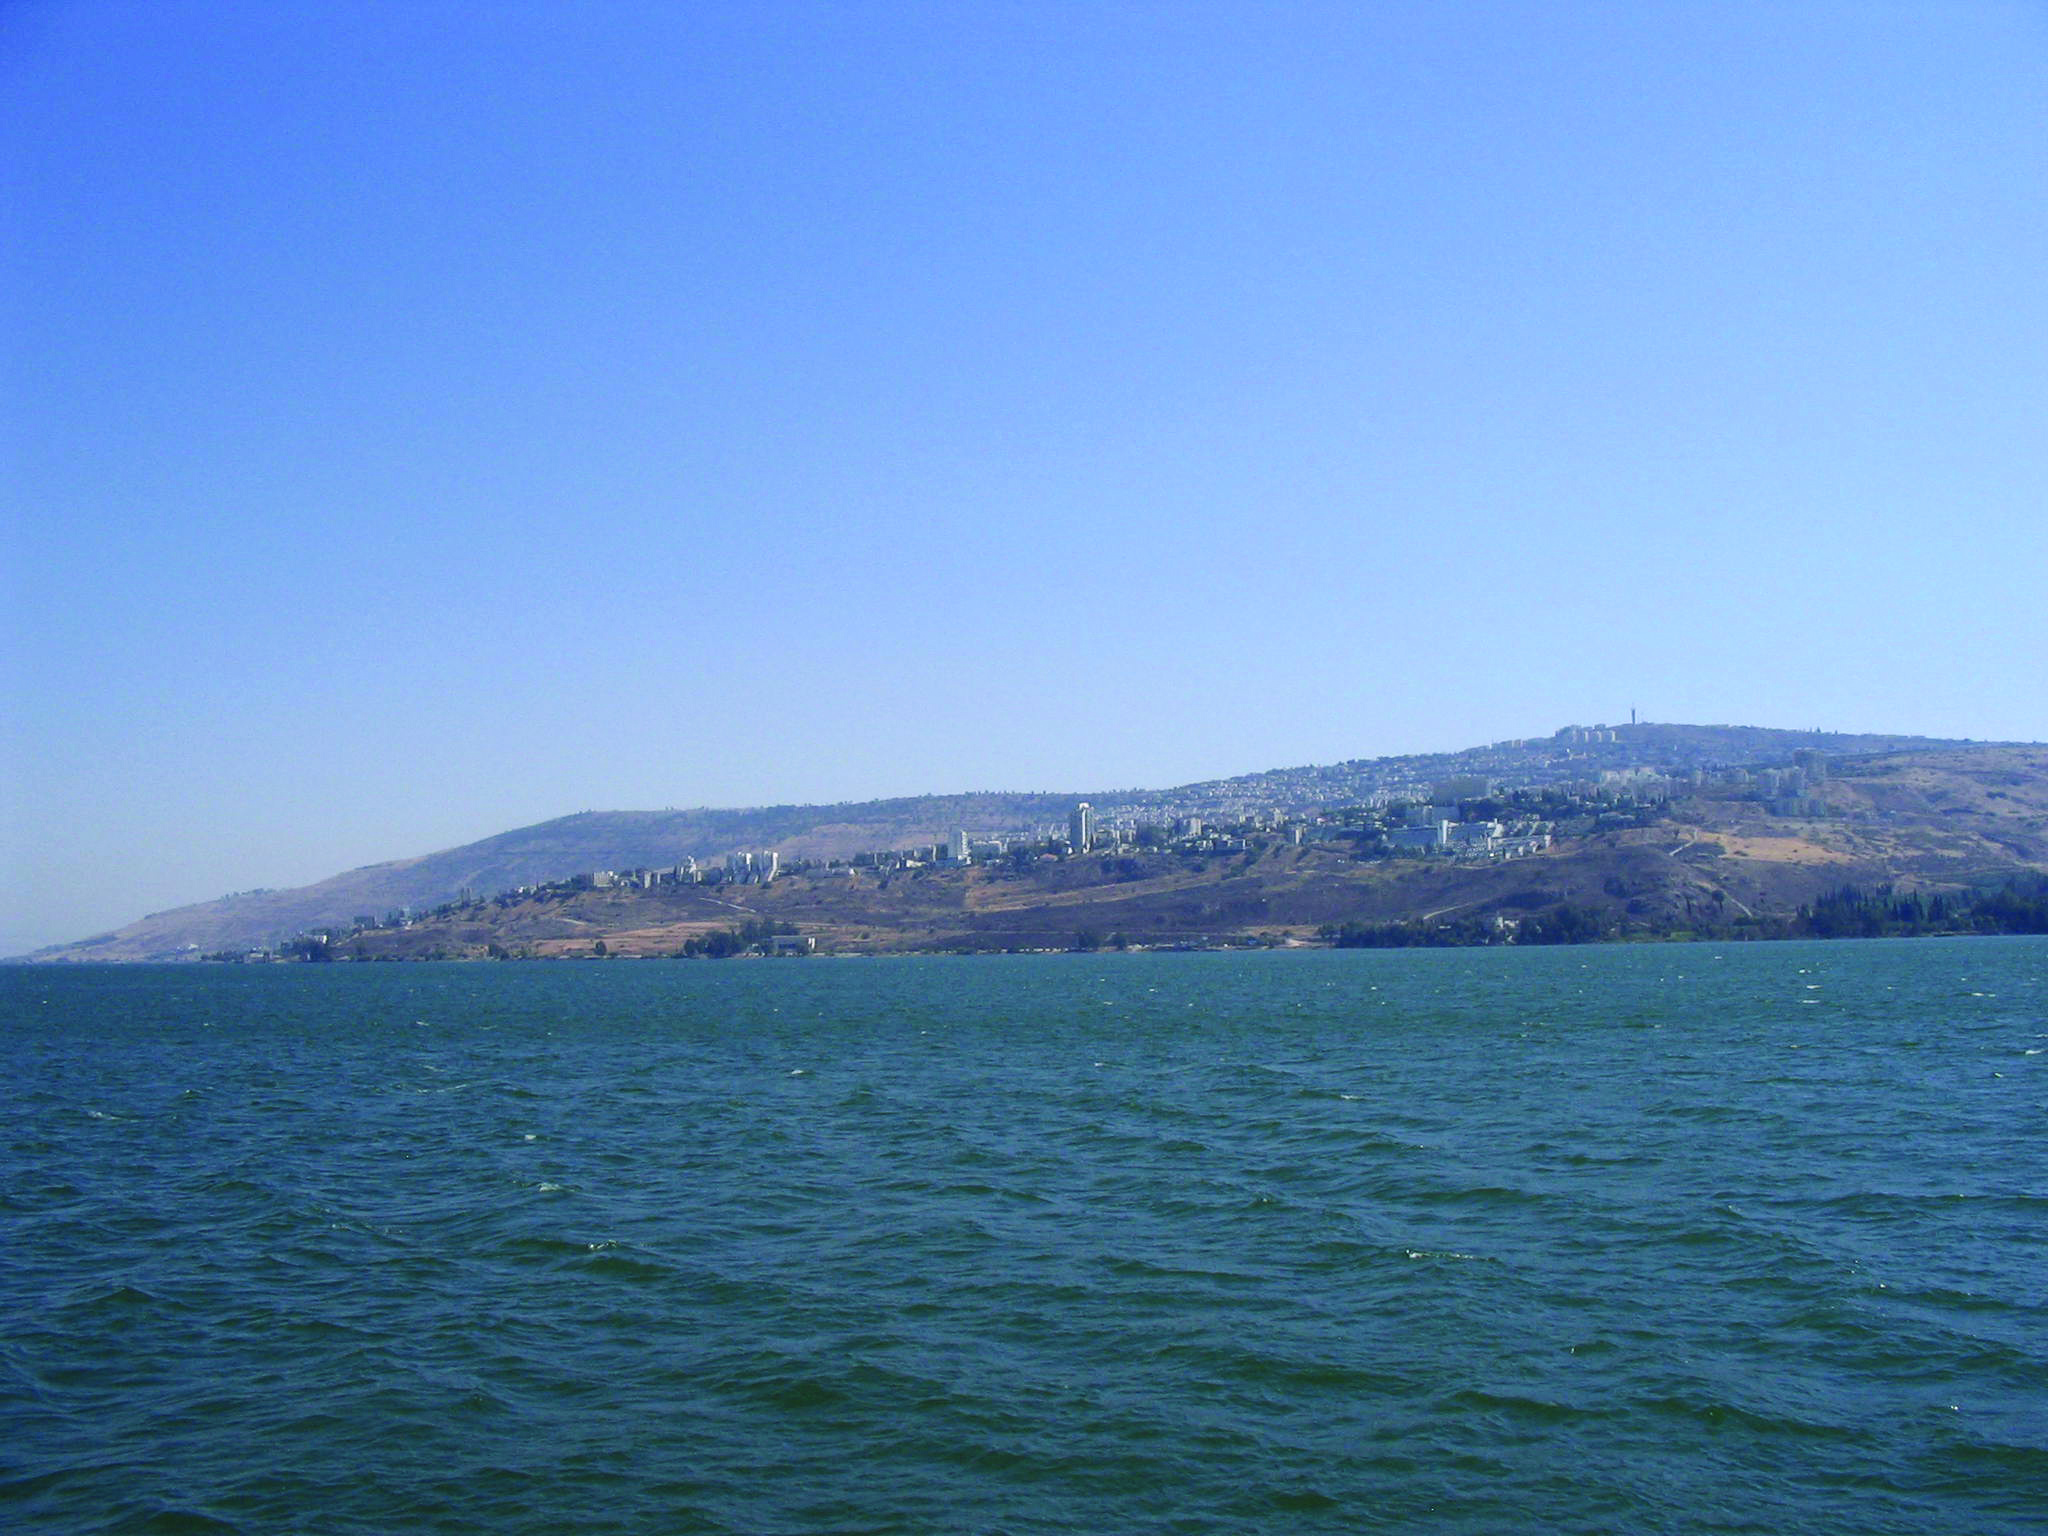 Sea Of Galilee And City Of Tiberias